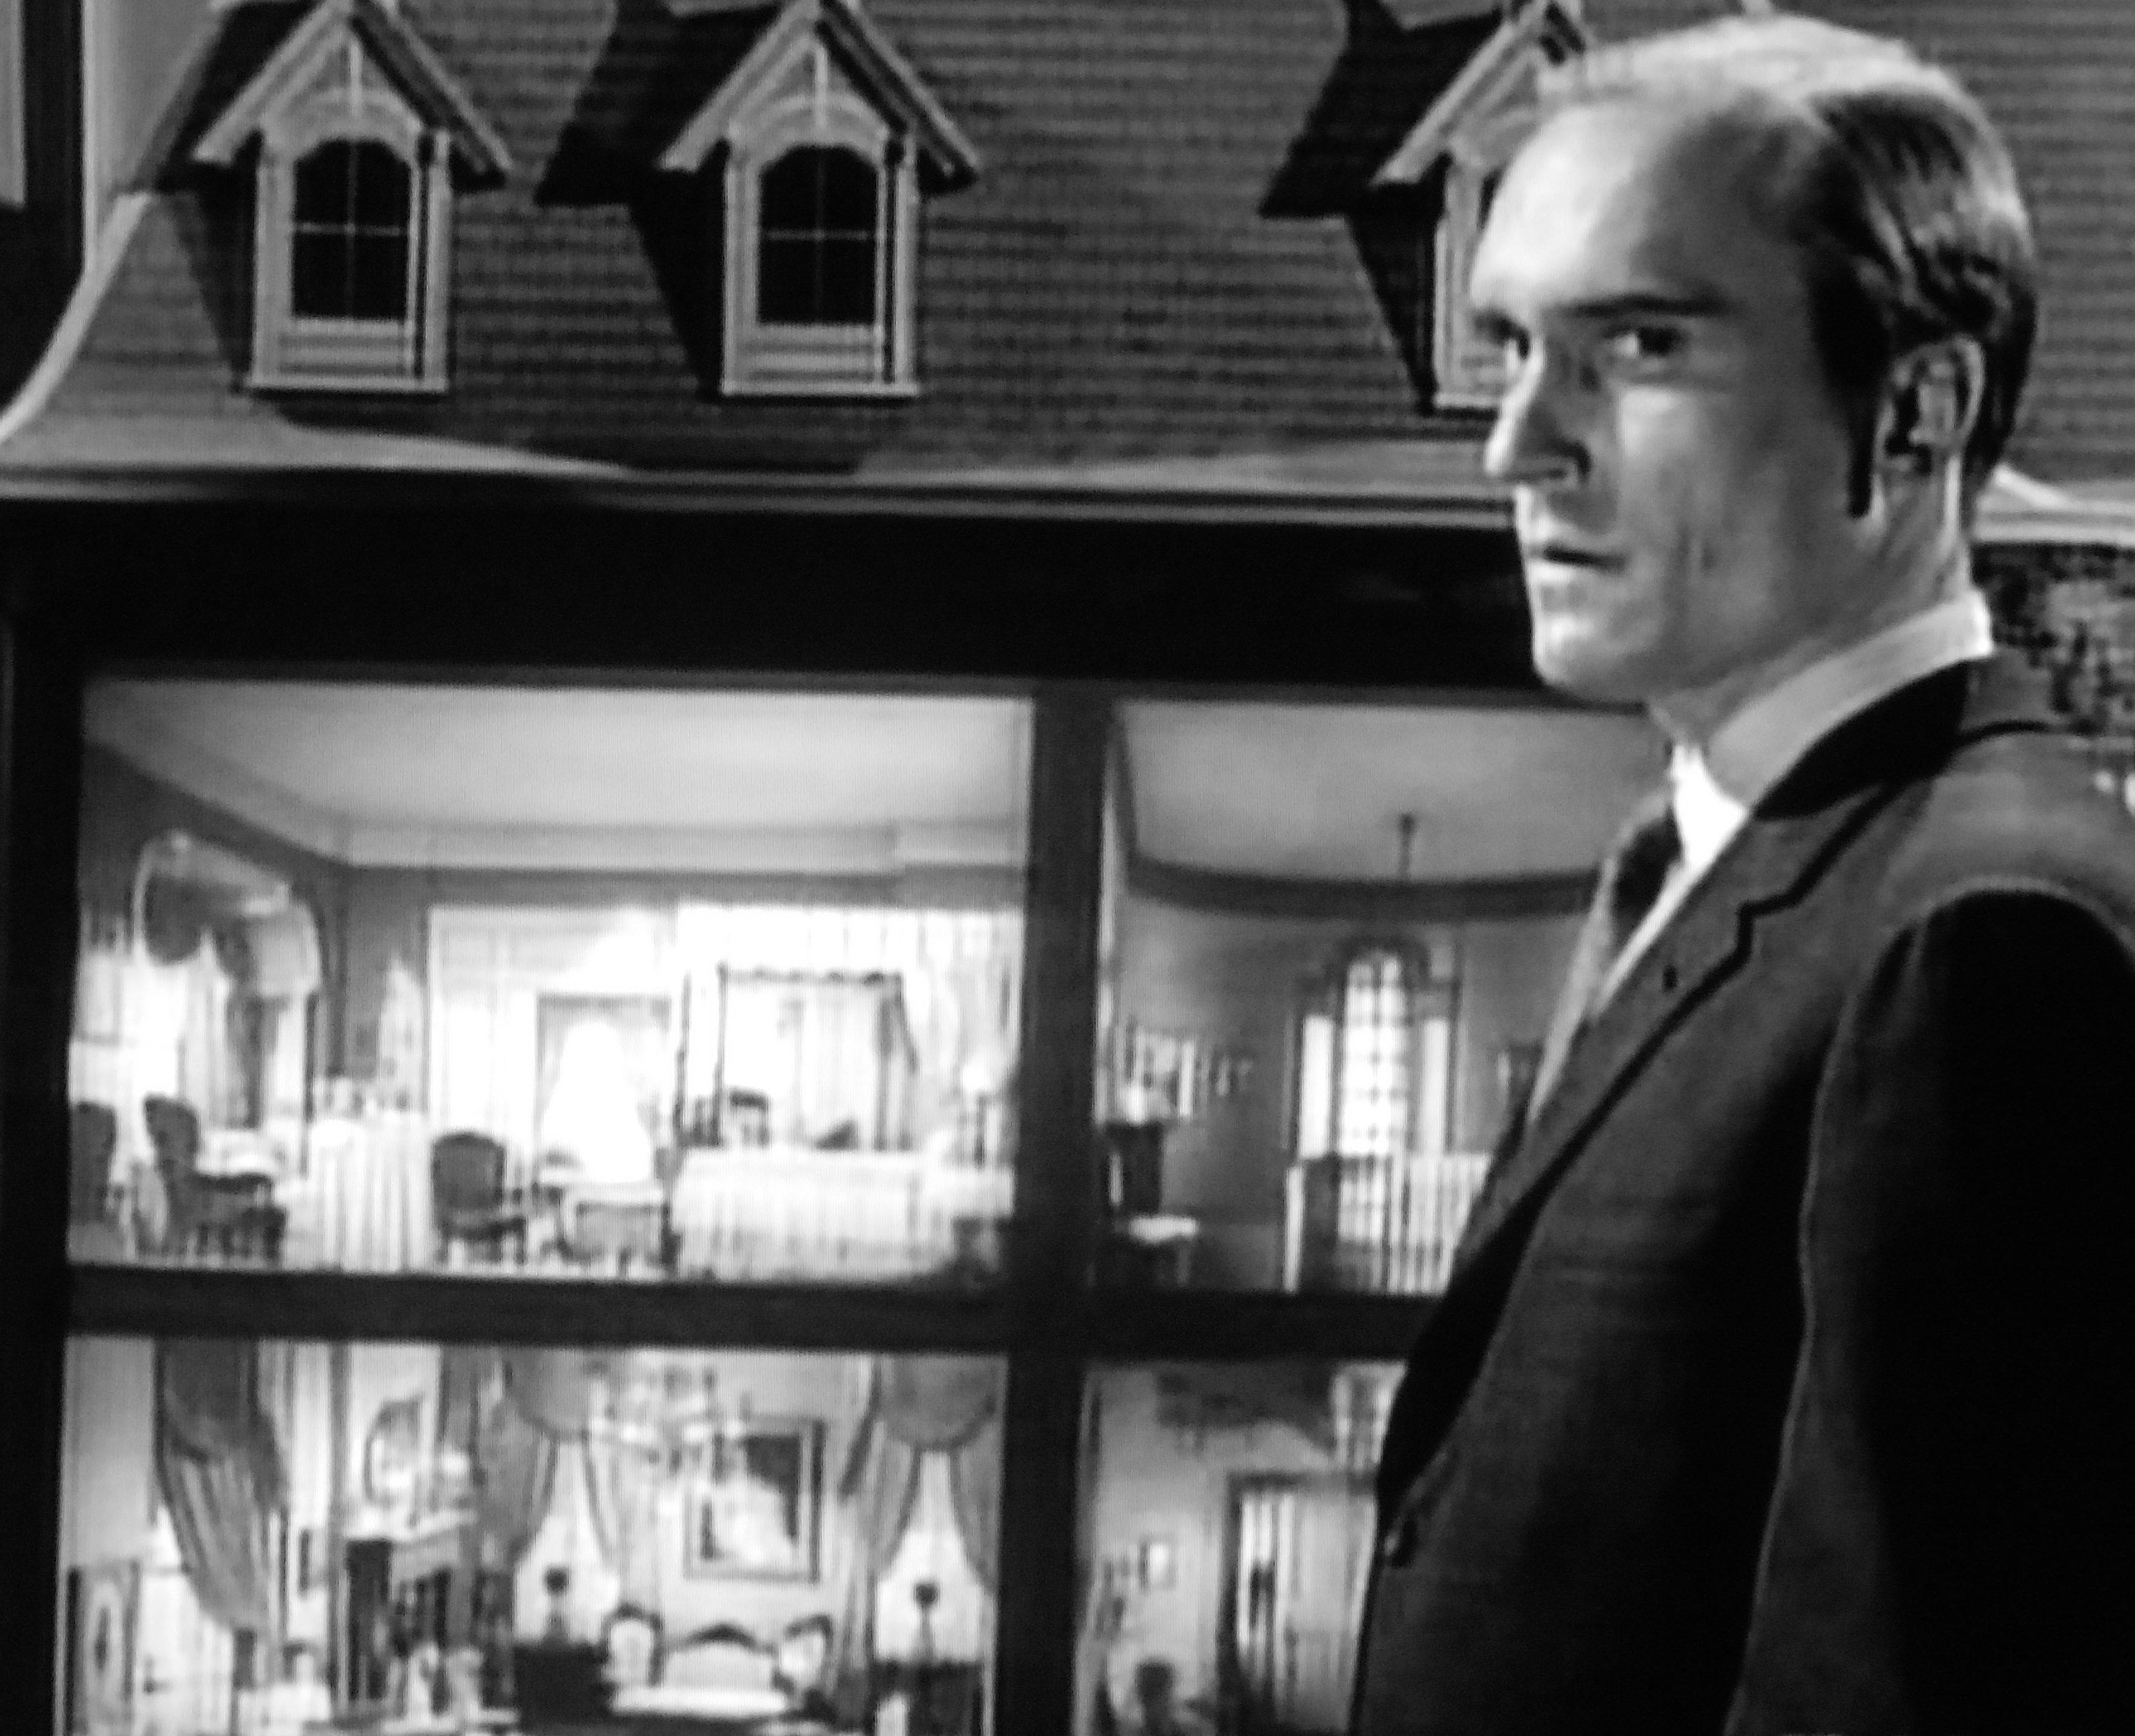 Season 4 Episode 8 Miniature First Aired On February 21 1963 Starring Robert Duvall Pert Kelton And Twilight Zone Episodes Twilight Zone Robert Duvall